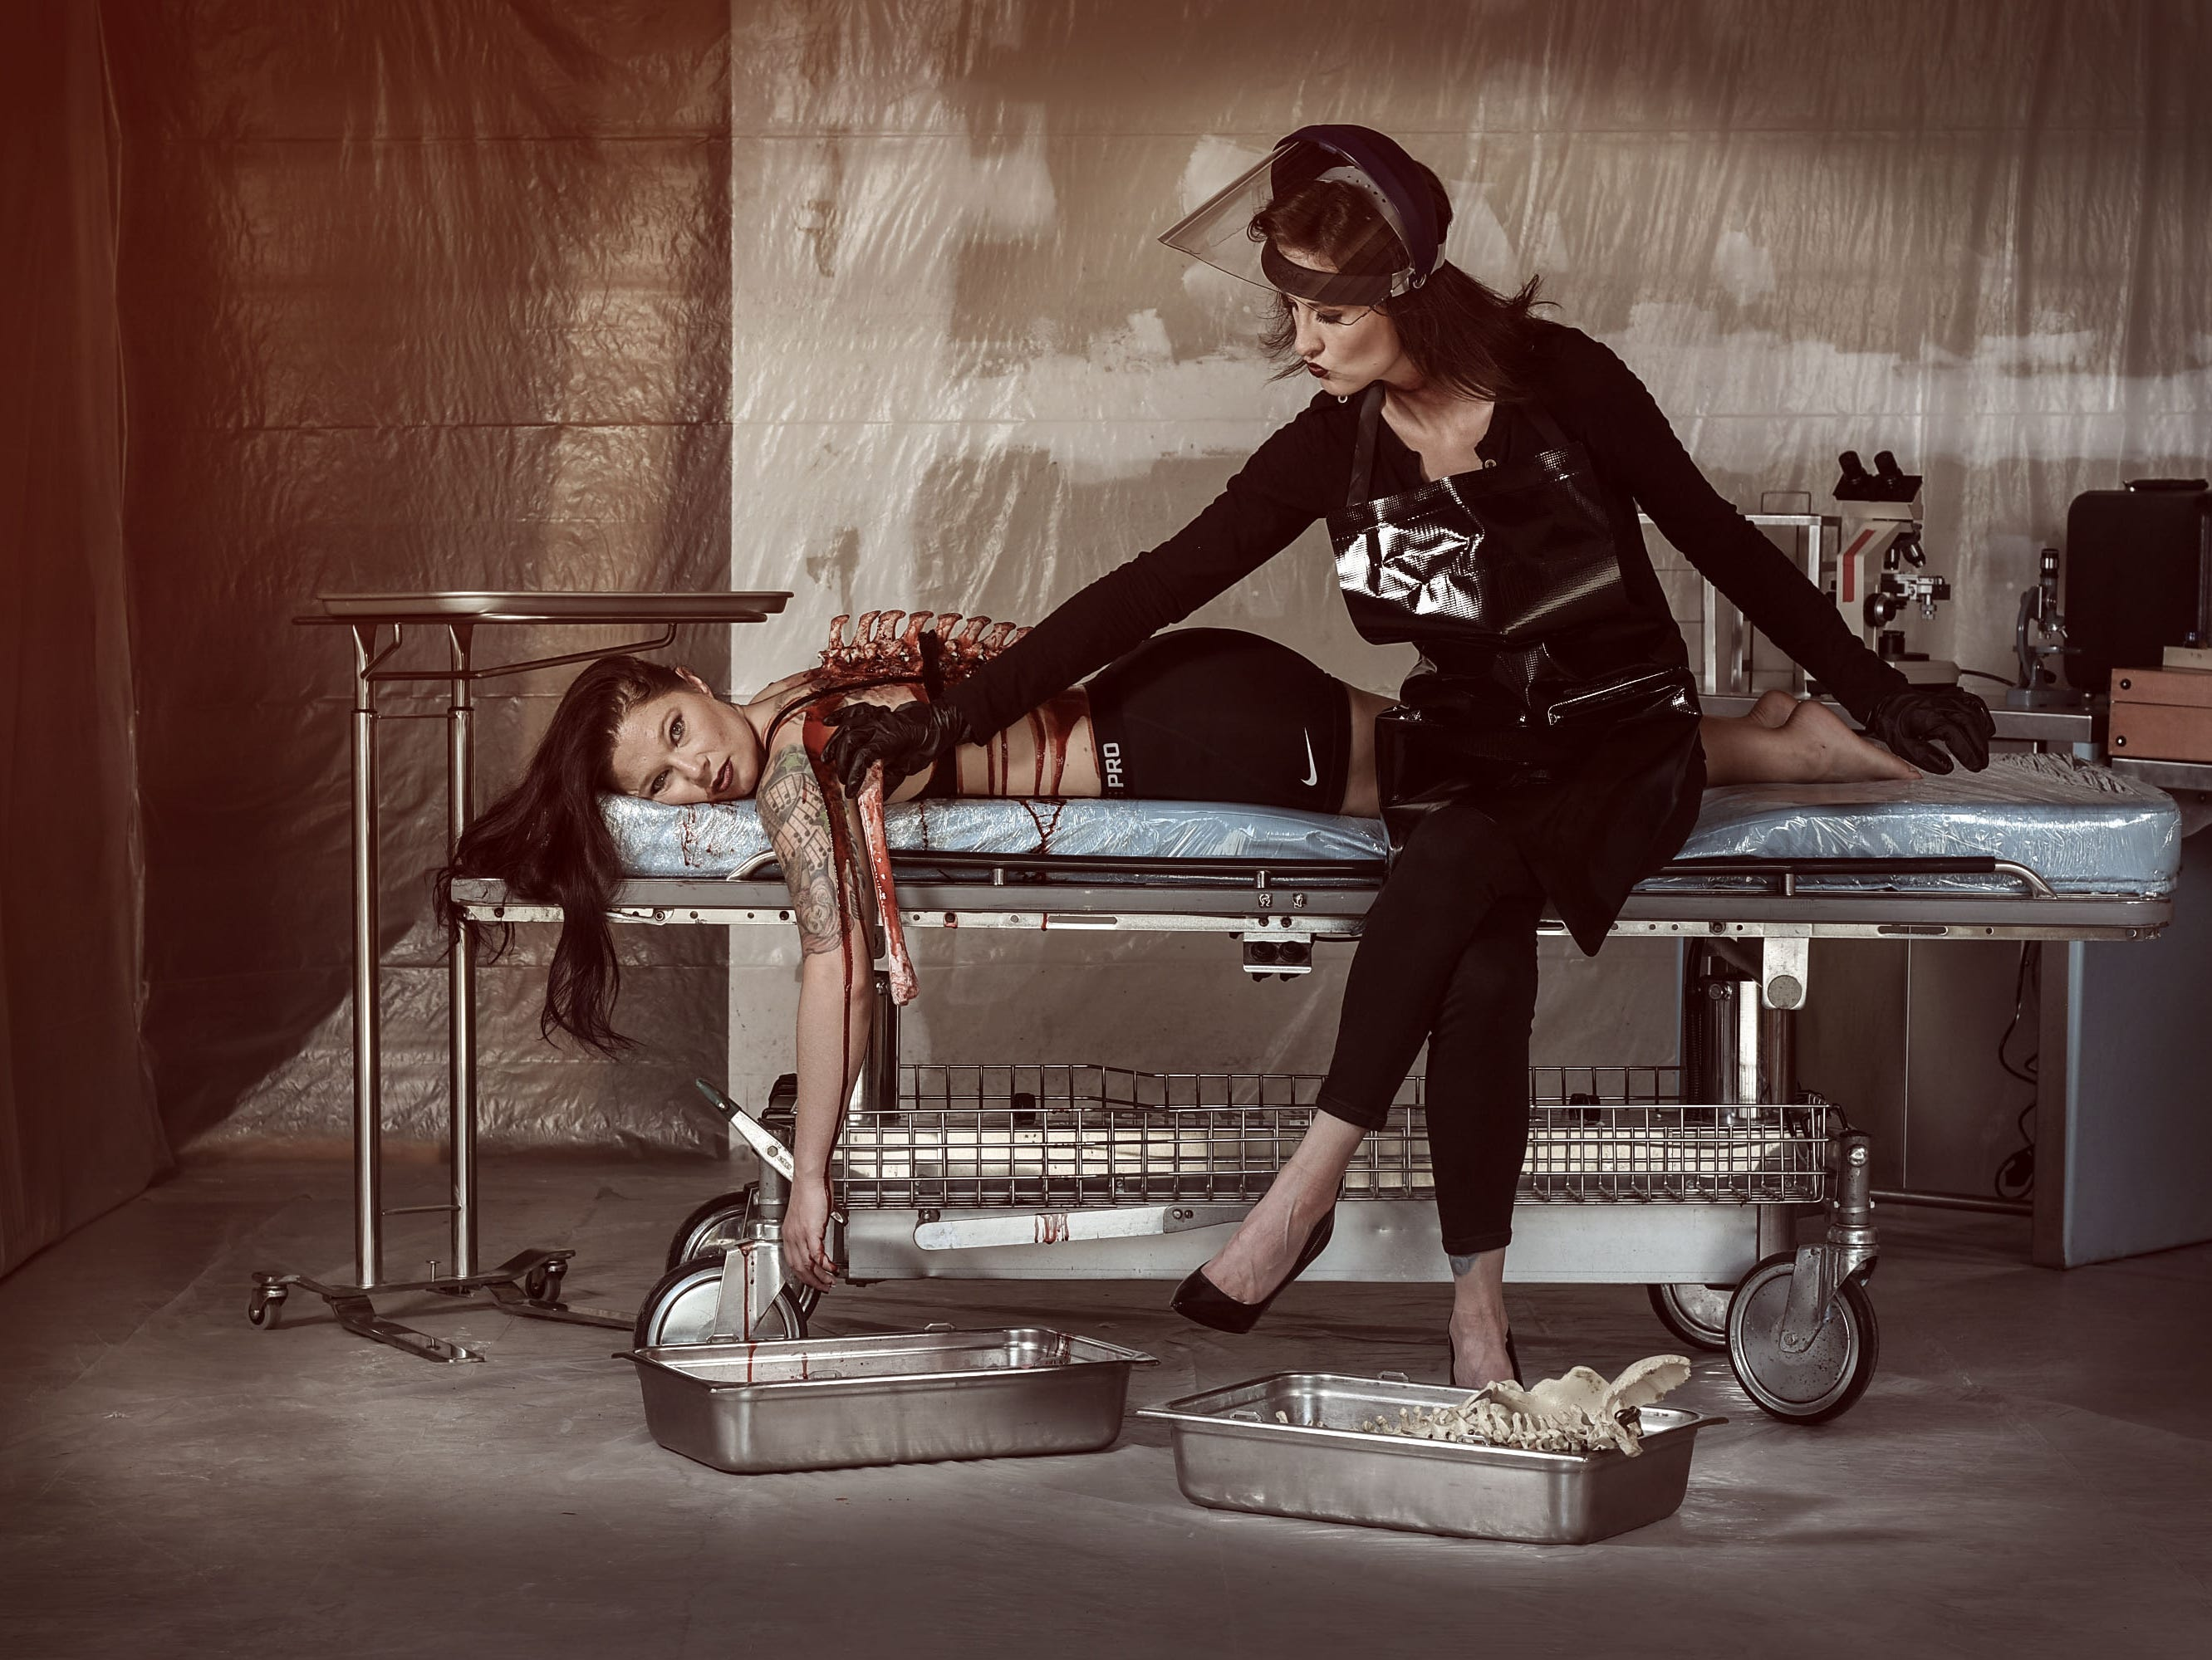 Lori Cannon as the physician with Leighann Word as the victim in this horror-themed photo session by Mallory Bertrand. Special effects by Ash Mac.